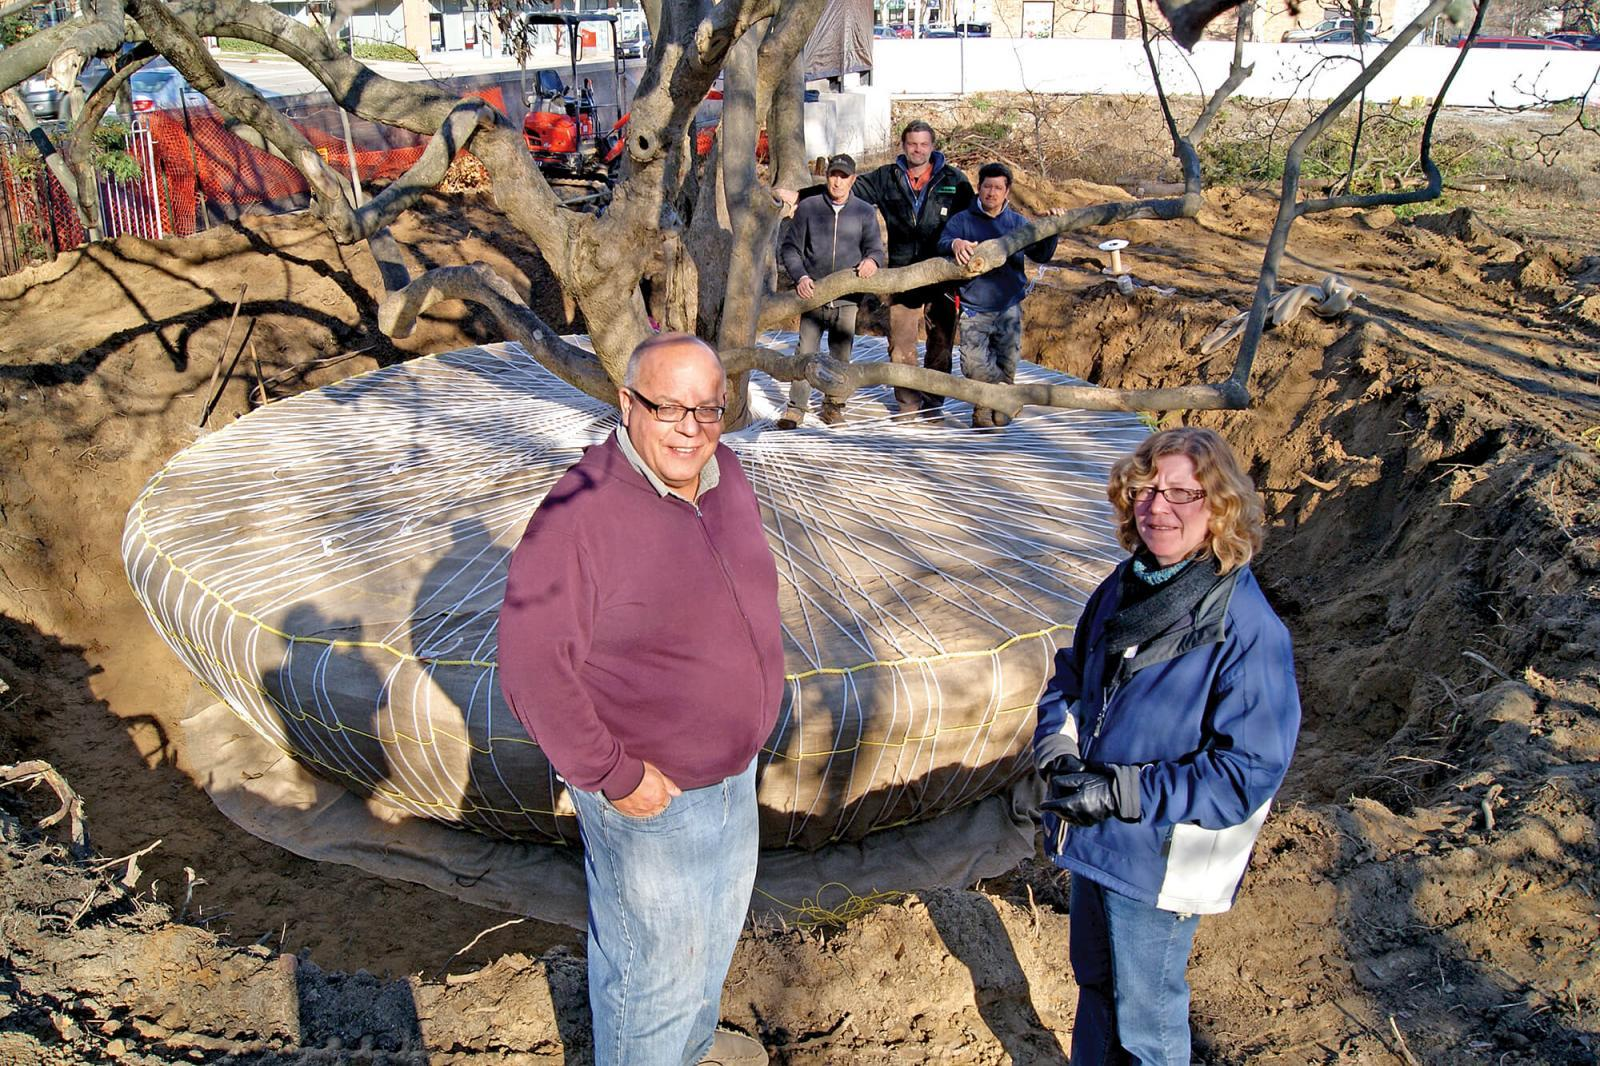 PAO Horticultural takes on 100-year-old magnolia